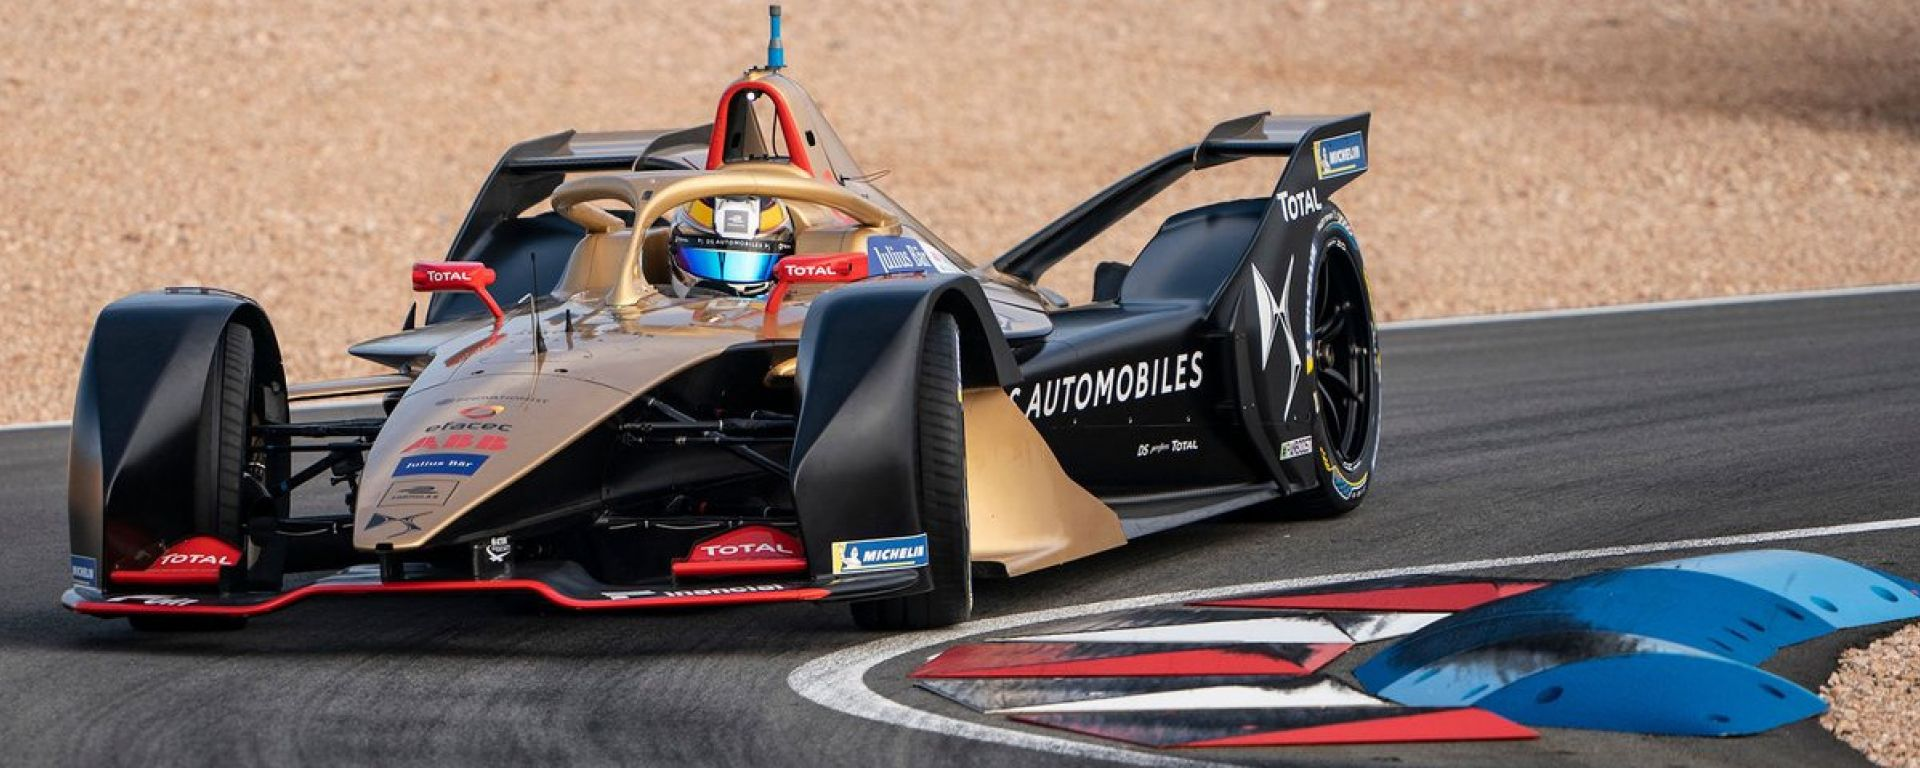 DS Techeetah, Vergne e Lotterer testano il powertrain 2019-2020